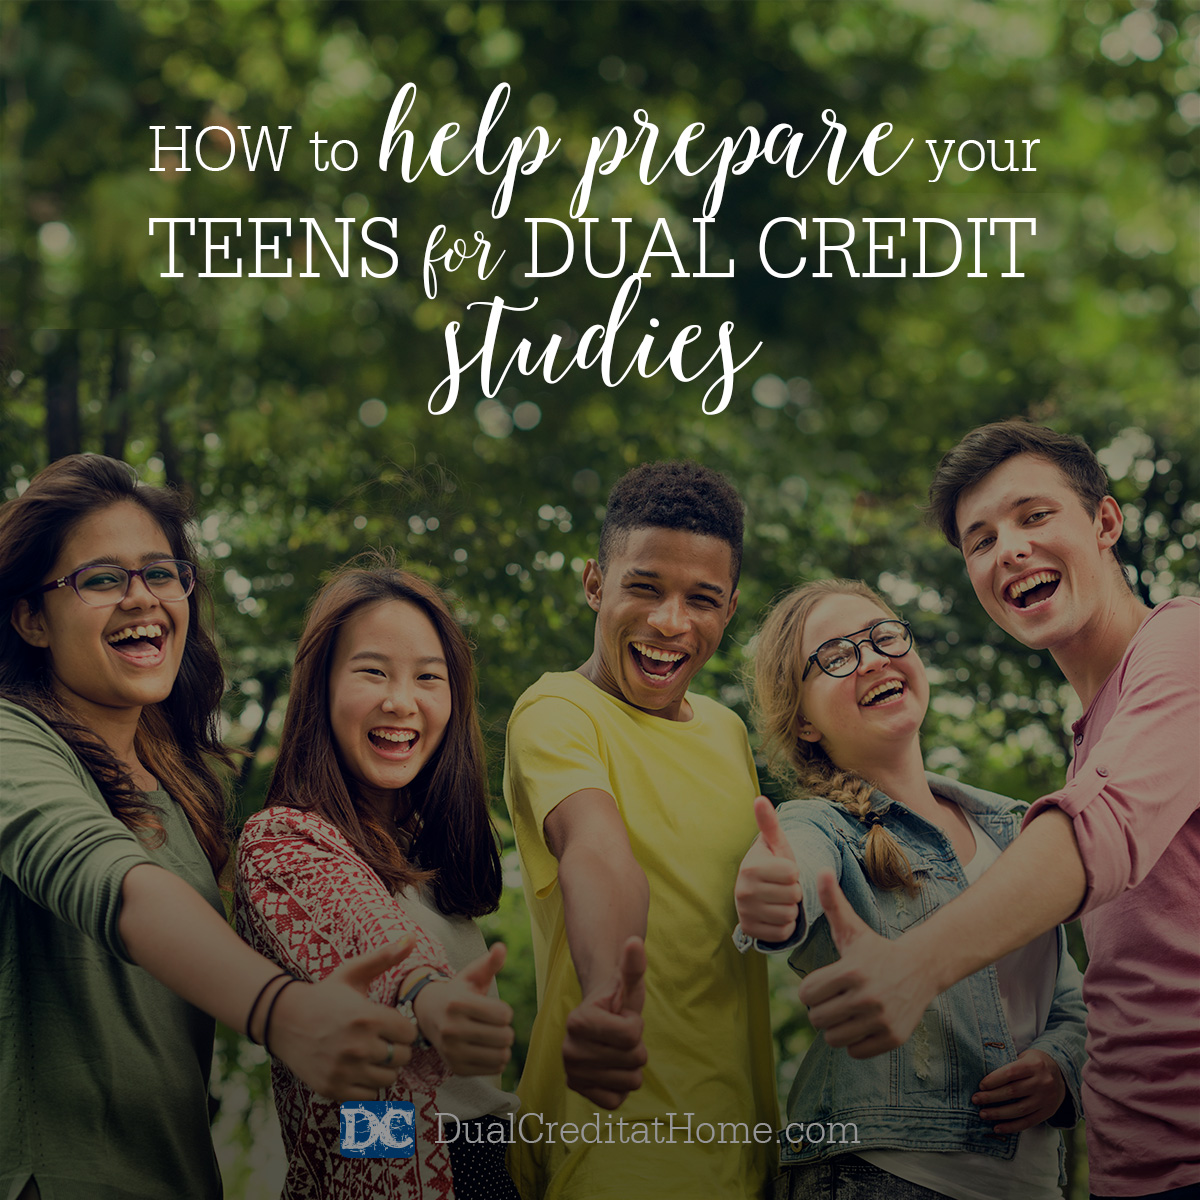 How to Help Prepare Your Teens for Dual Credit Studies